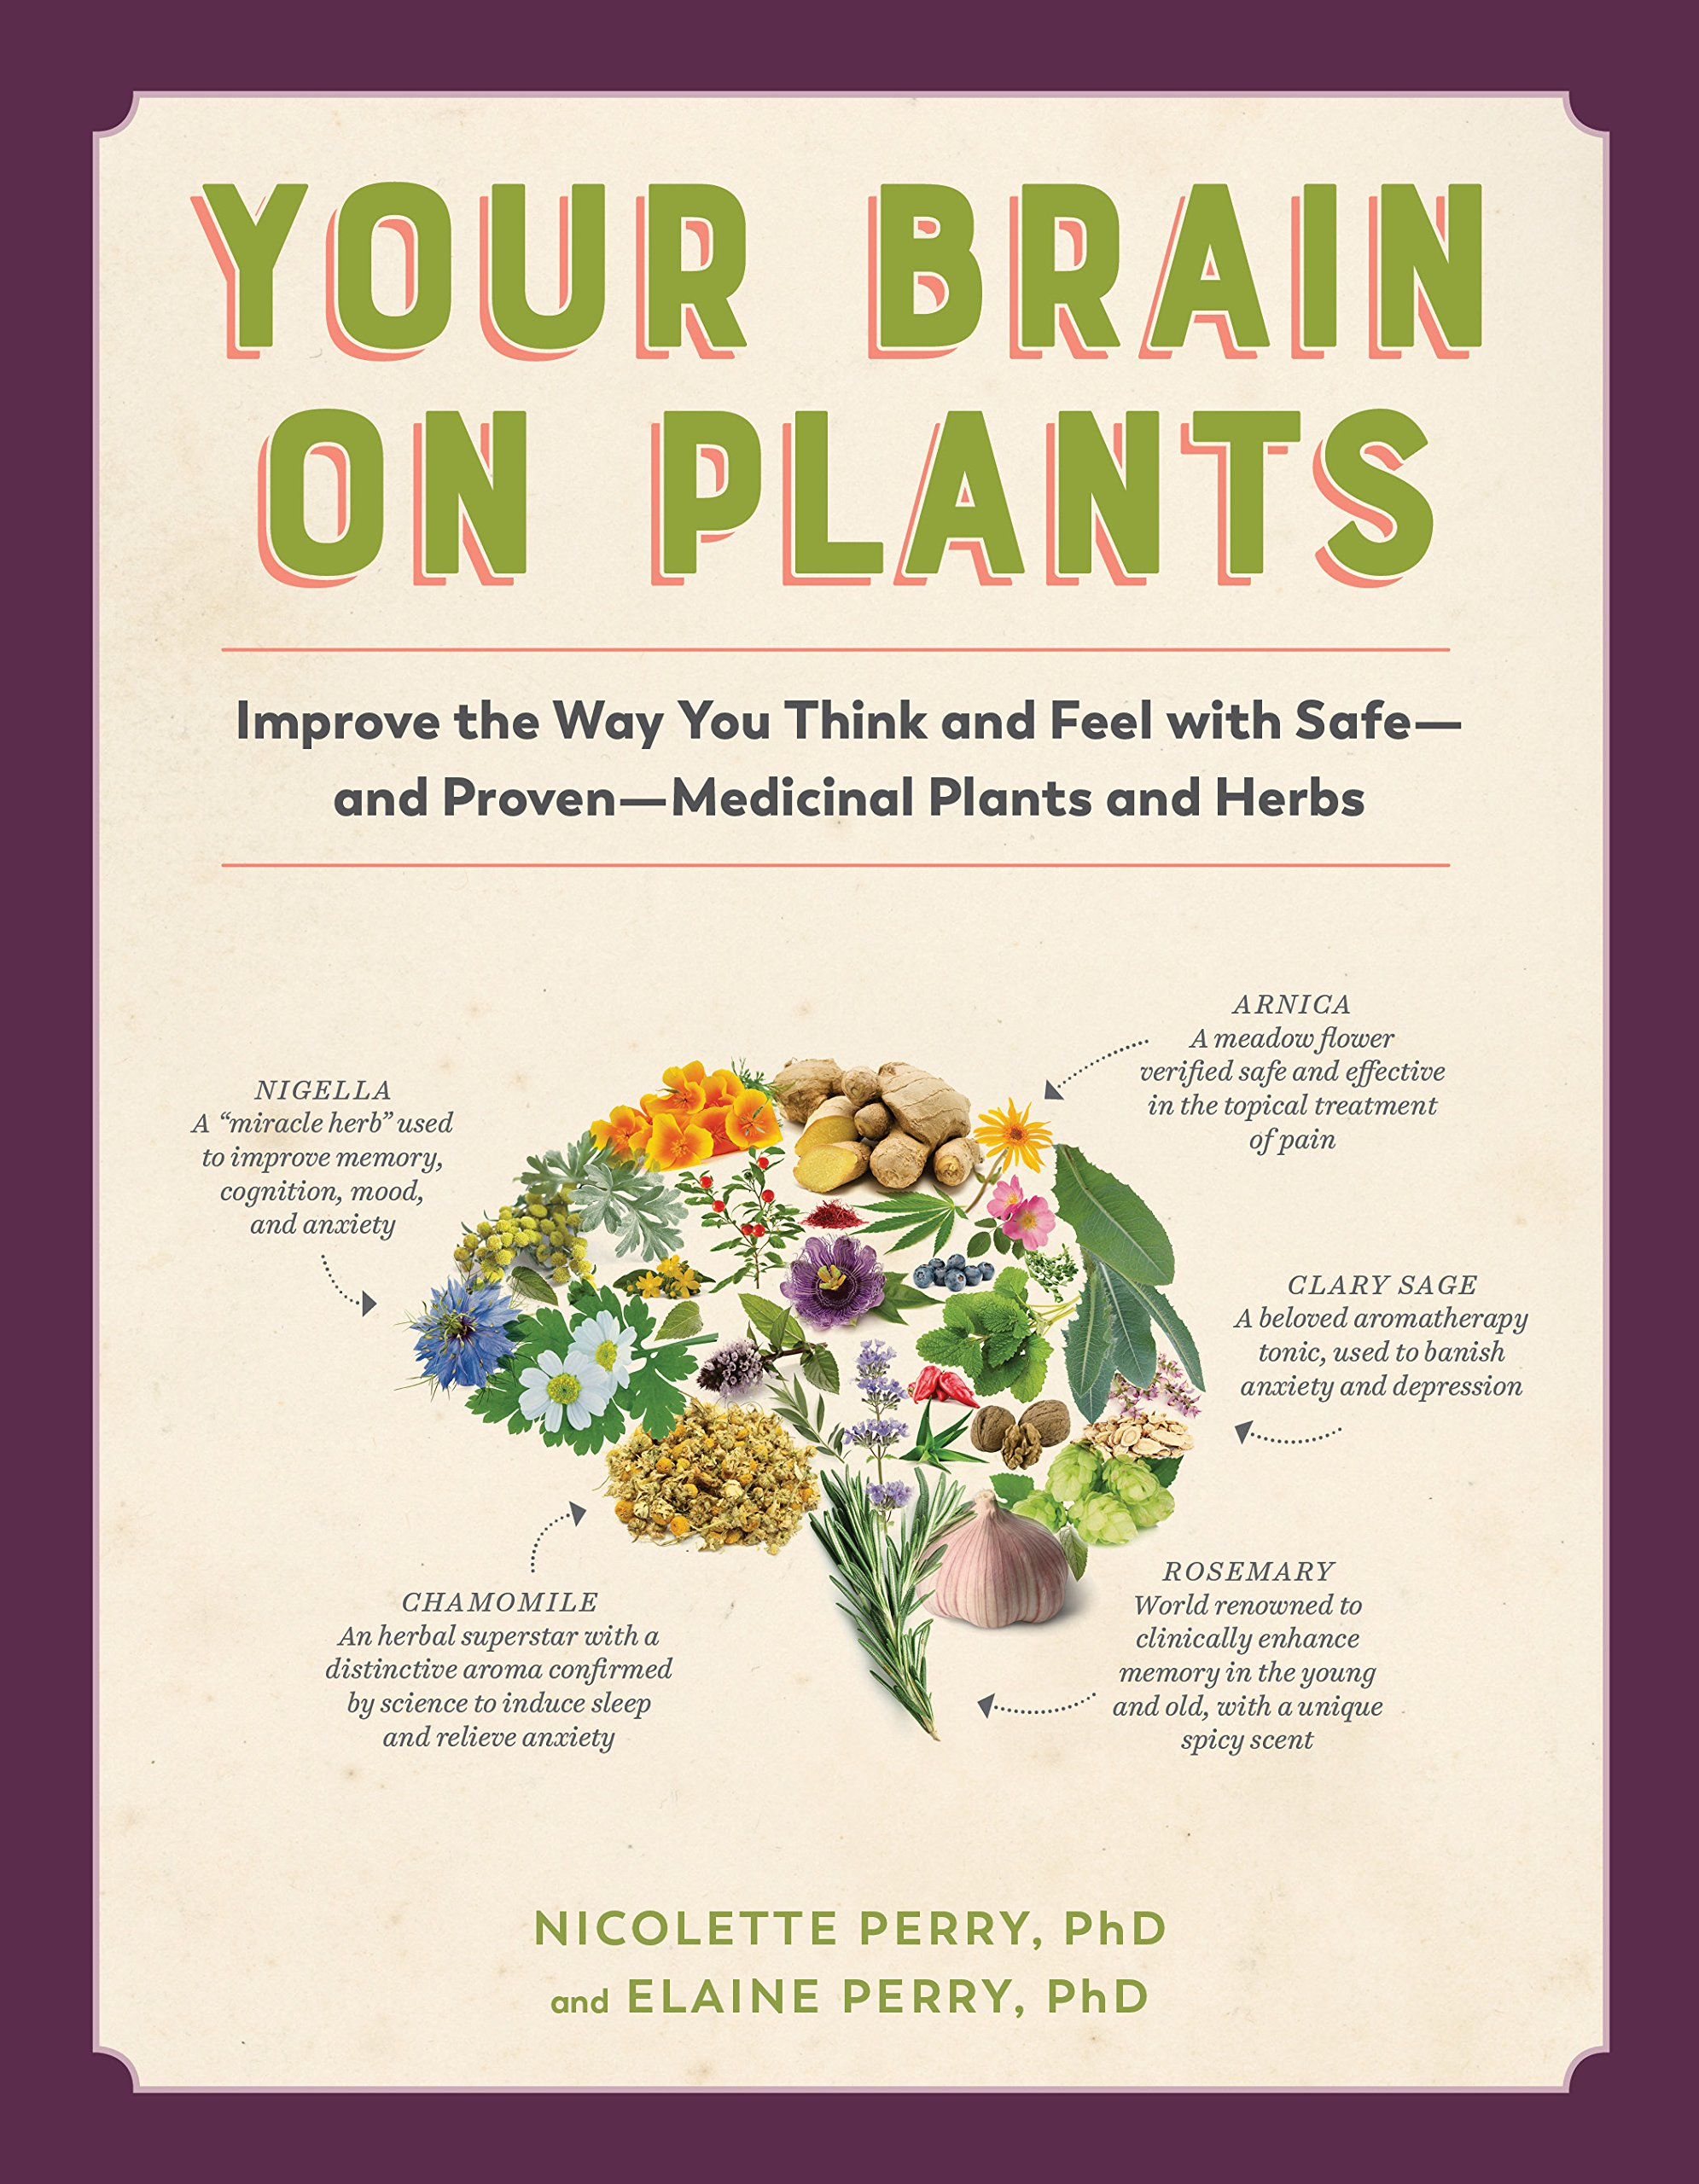 your brain on plants book cover